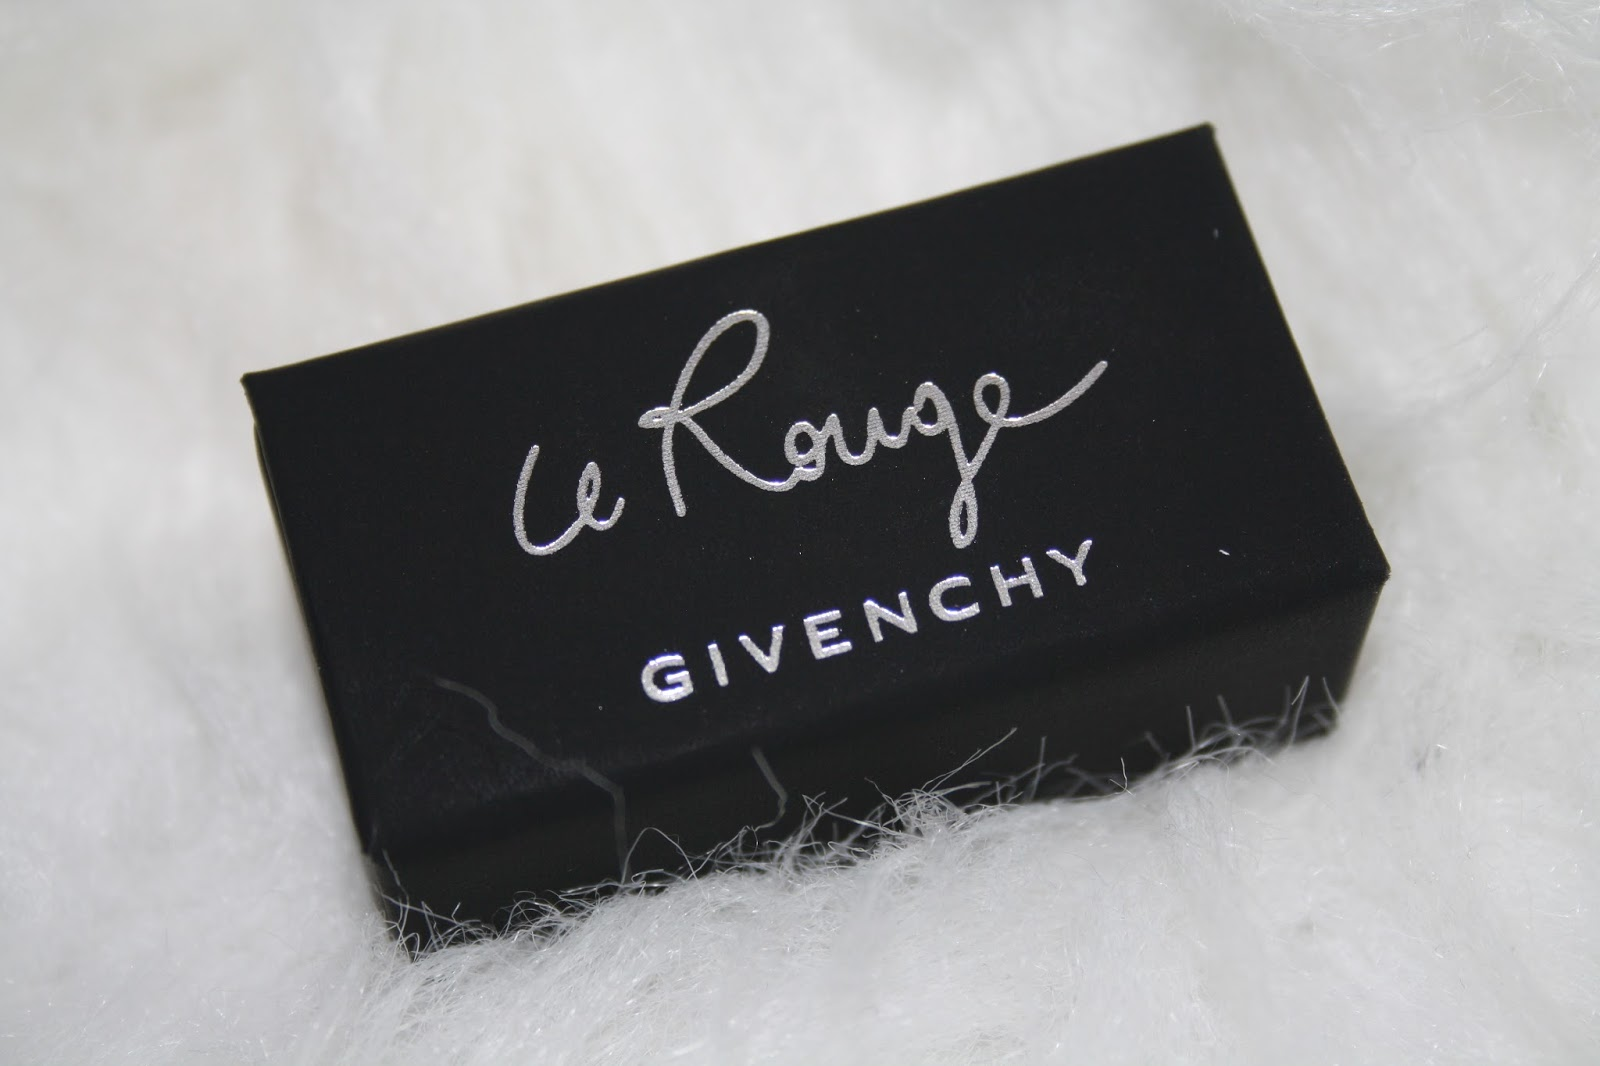 BBB Givenchy Beauty Box